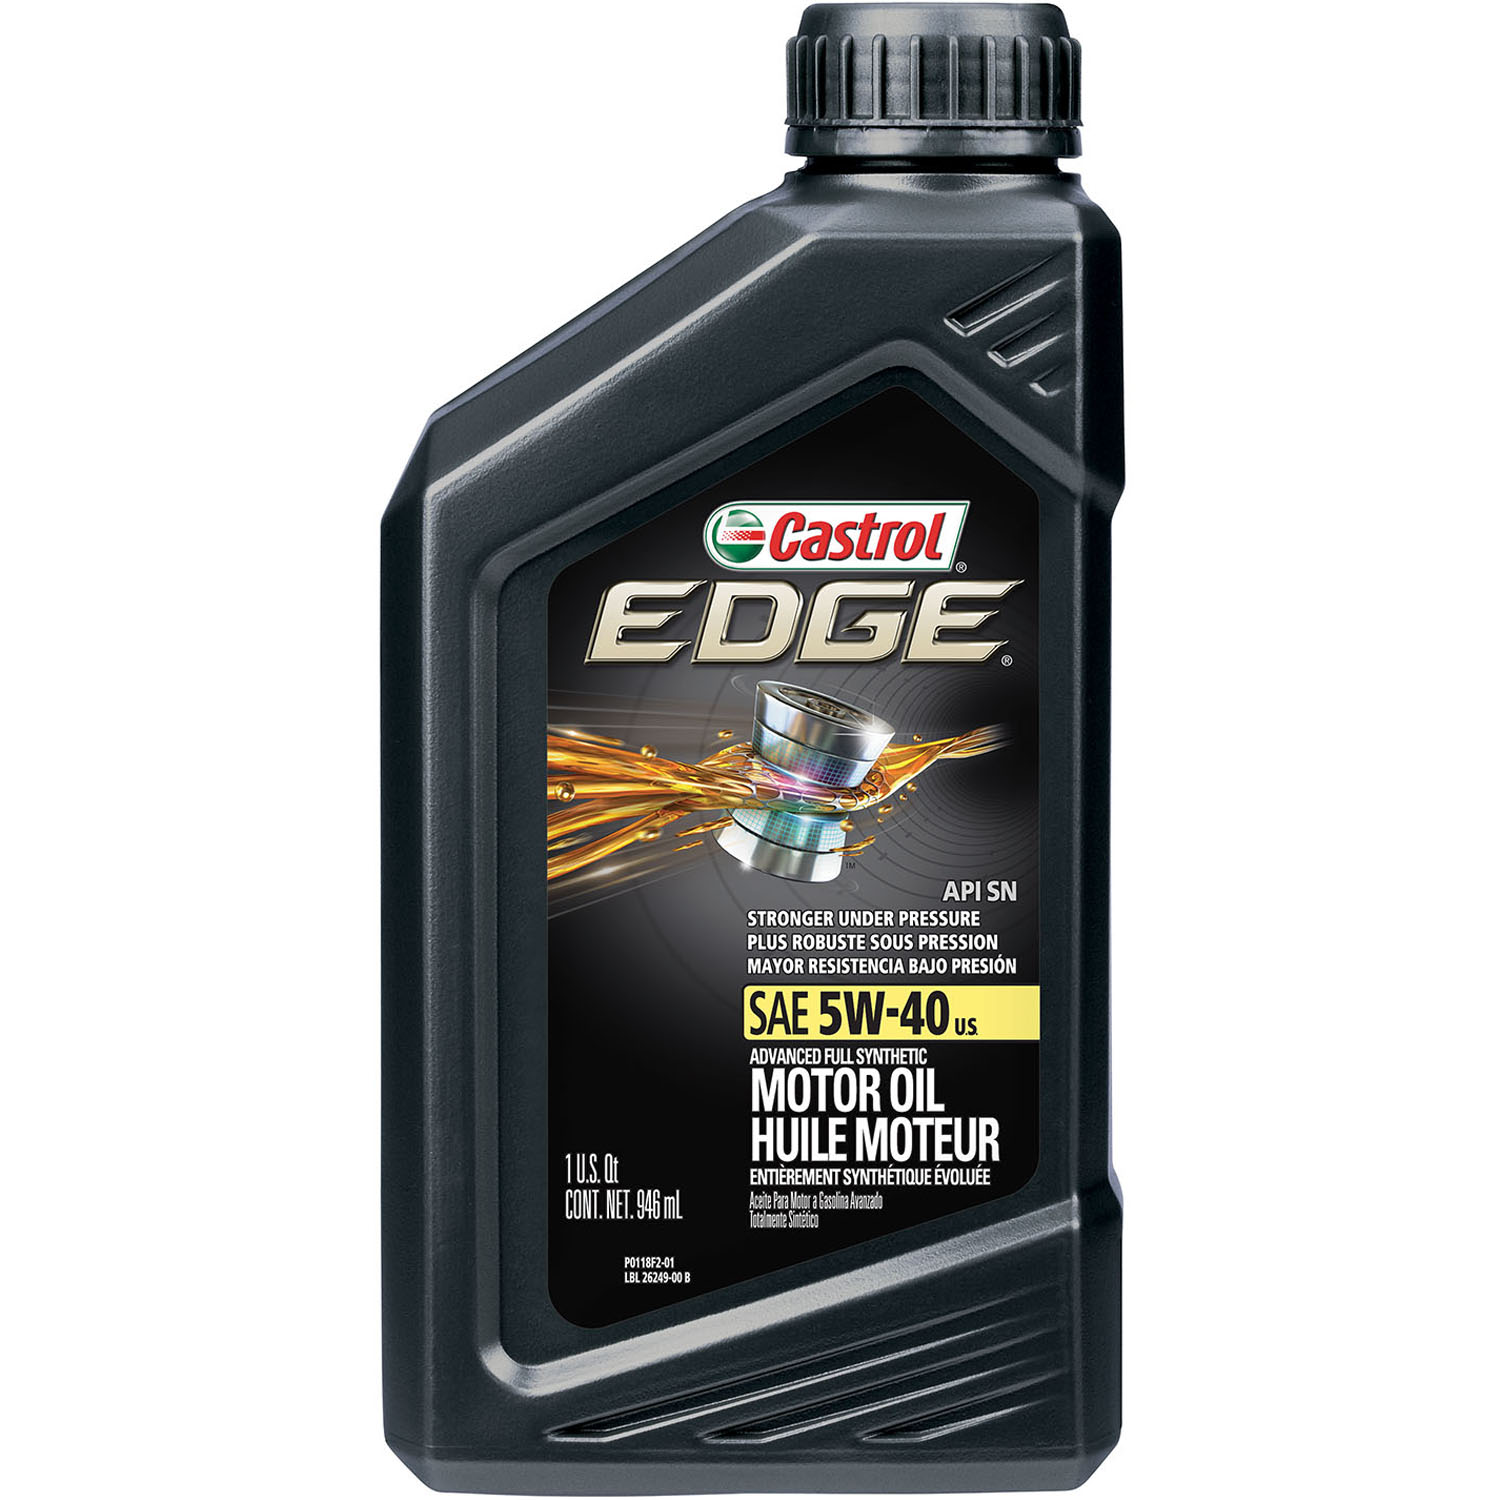 5 W 40 Castrol Edge 5w 40 Advanced Full Synthetic Motor Oil 1 Qt